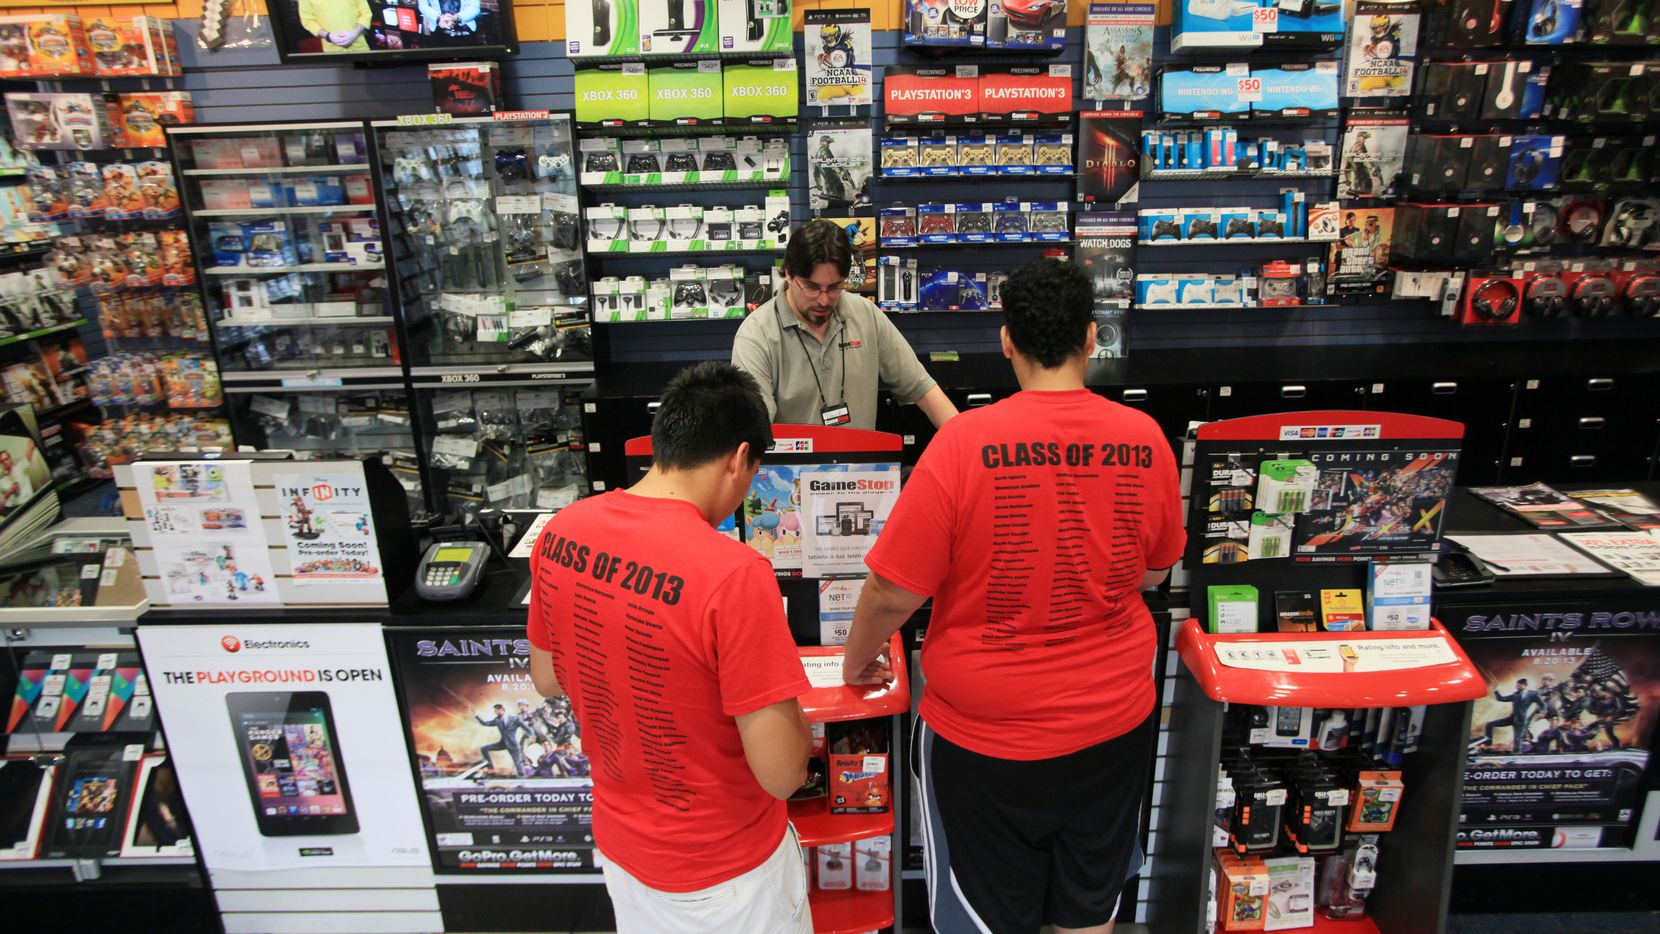 GameStop says it's seeing increased demand for its products as Americans spend more time at home to slow community spread of the virus.